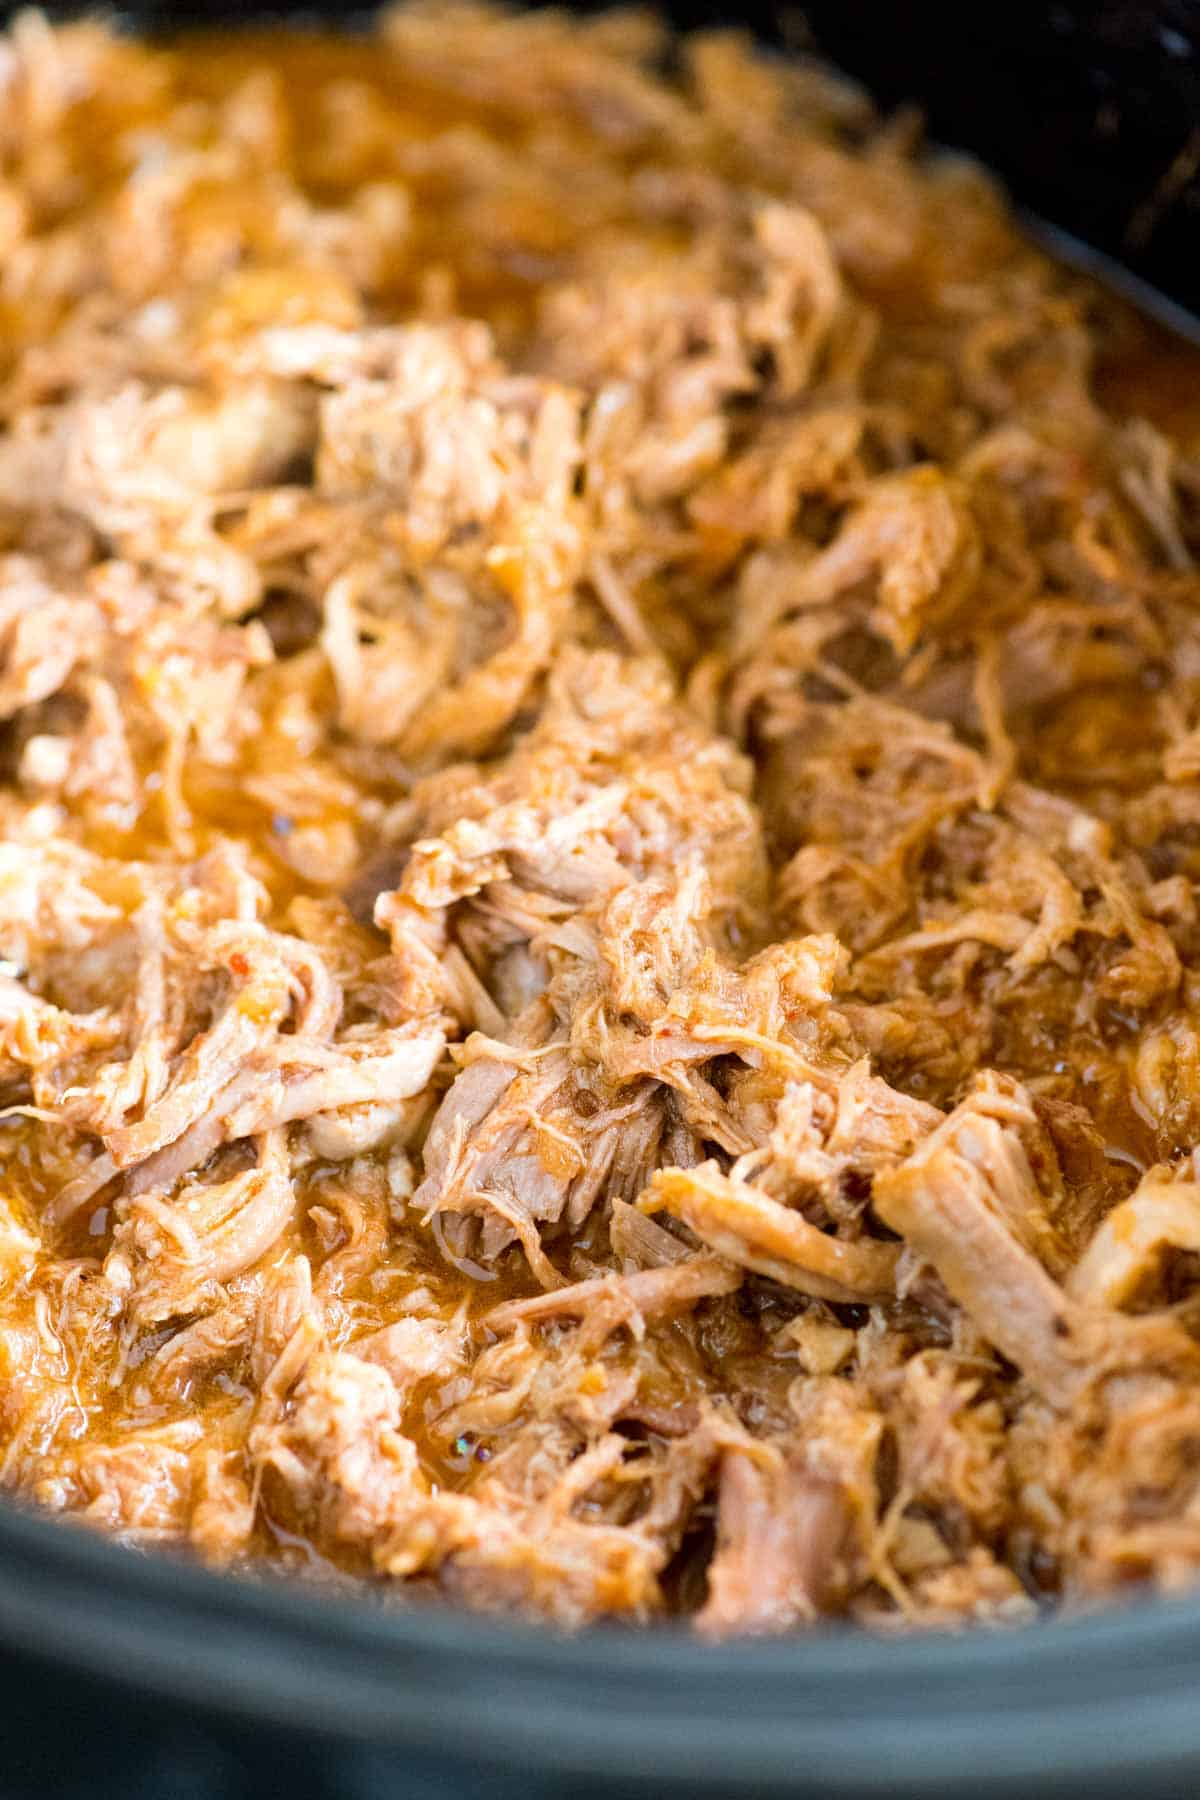 How to Make the Best Pulled Pork Using a Slow Cooker